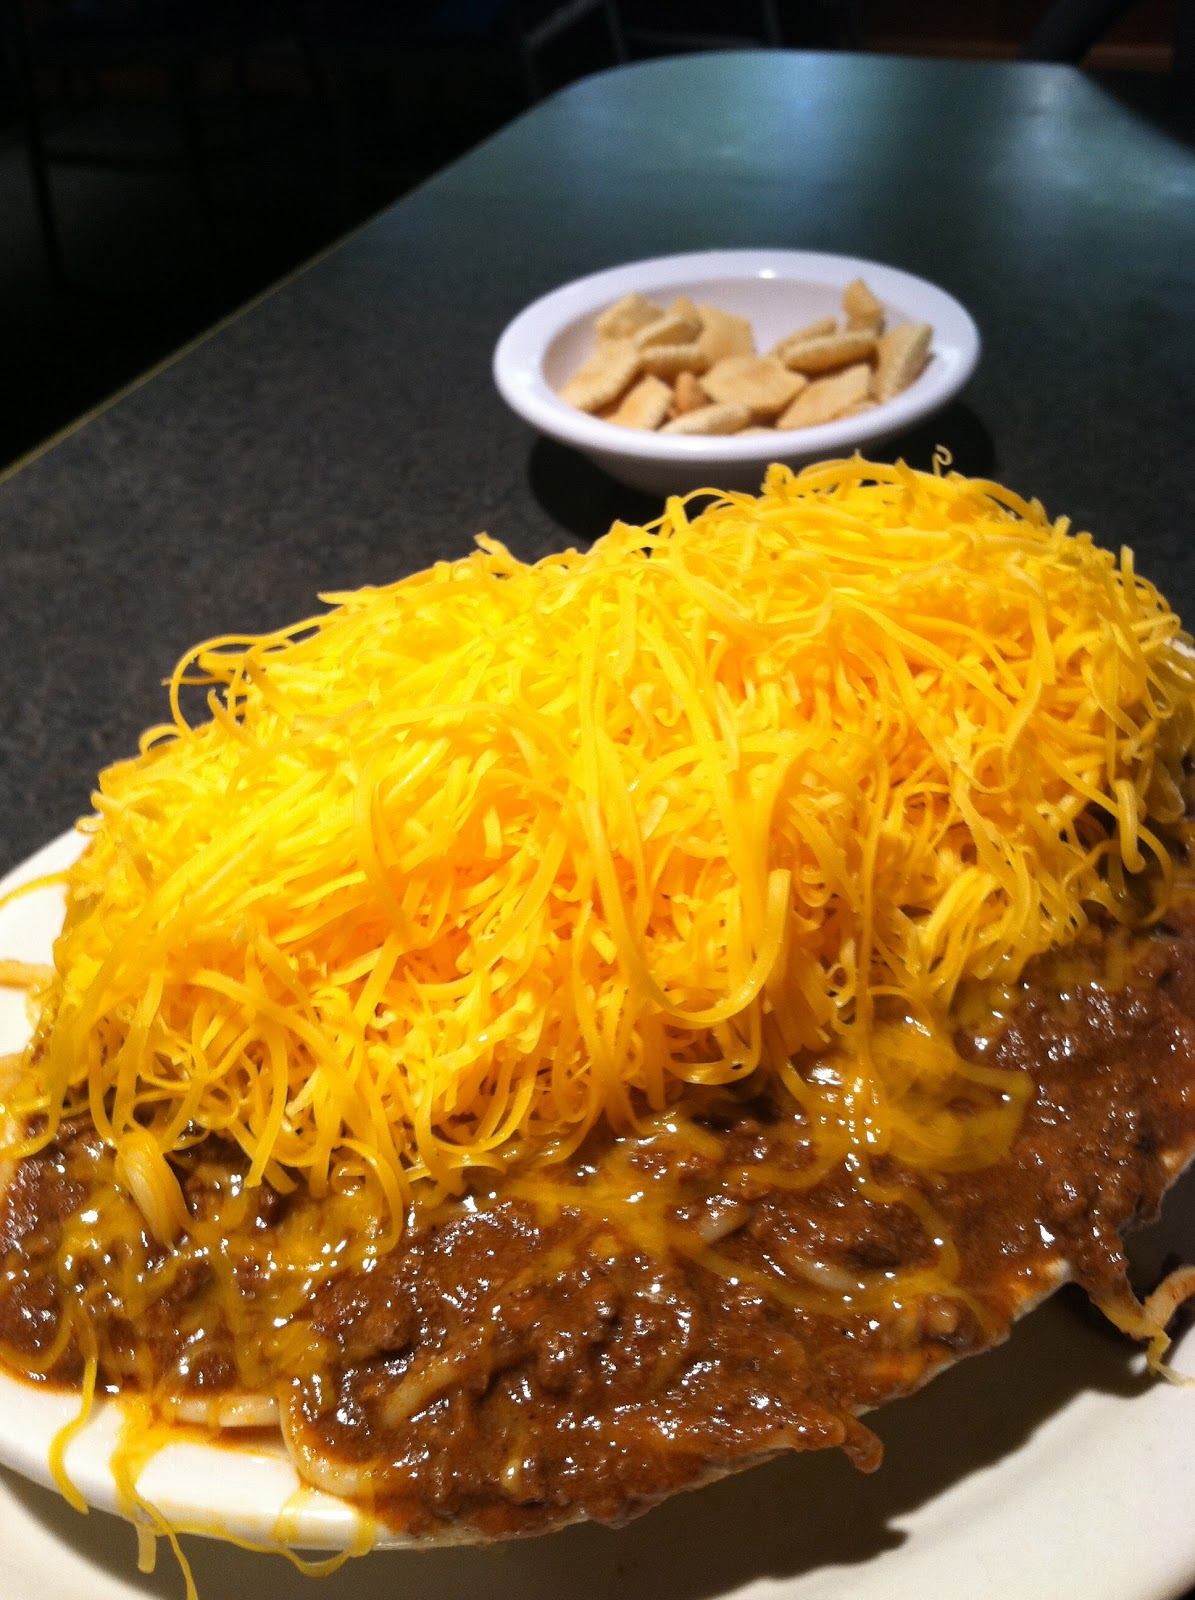 The Cooking Traveler: Skyline Chili